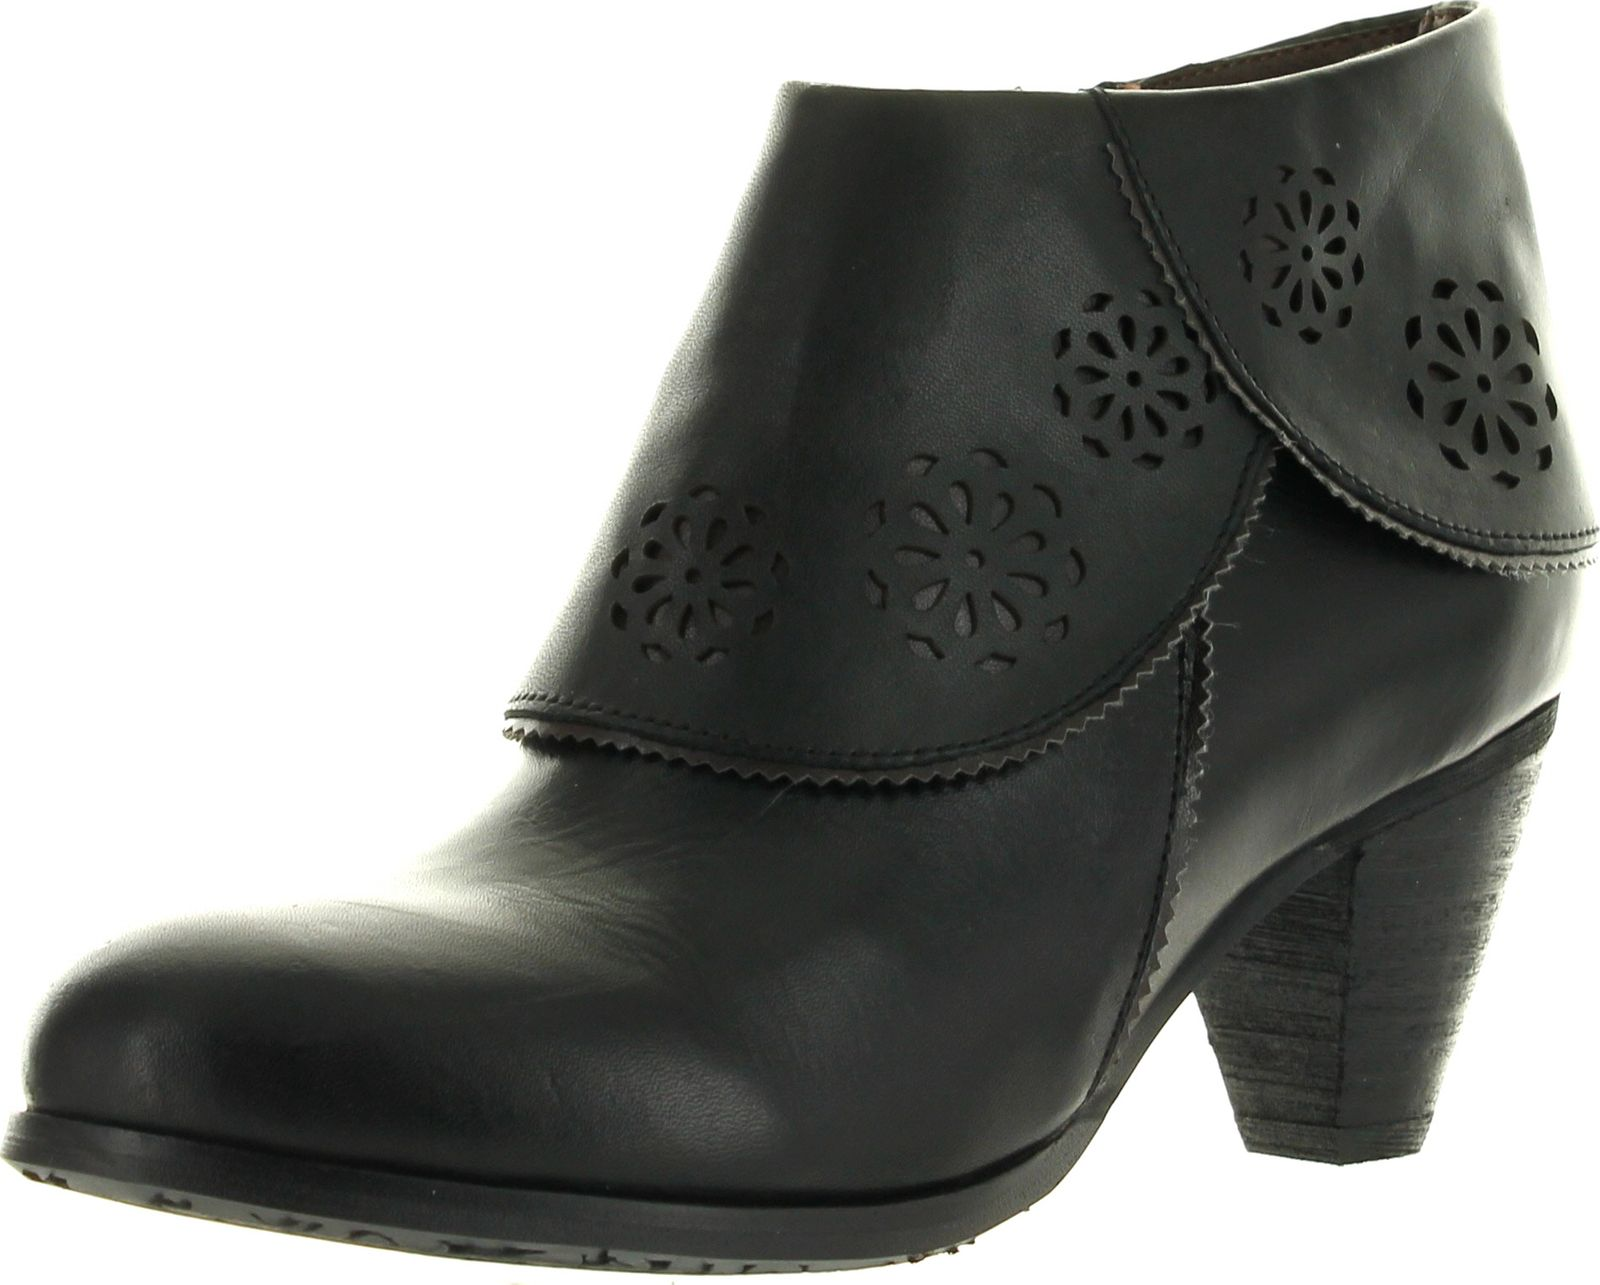 Spring Spring Spring Step Damenschuhe Linguette Fashion Bootie d4ca97